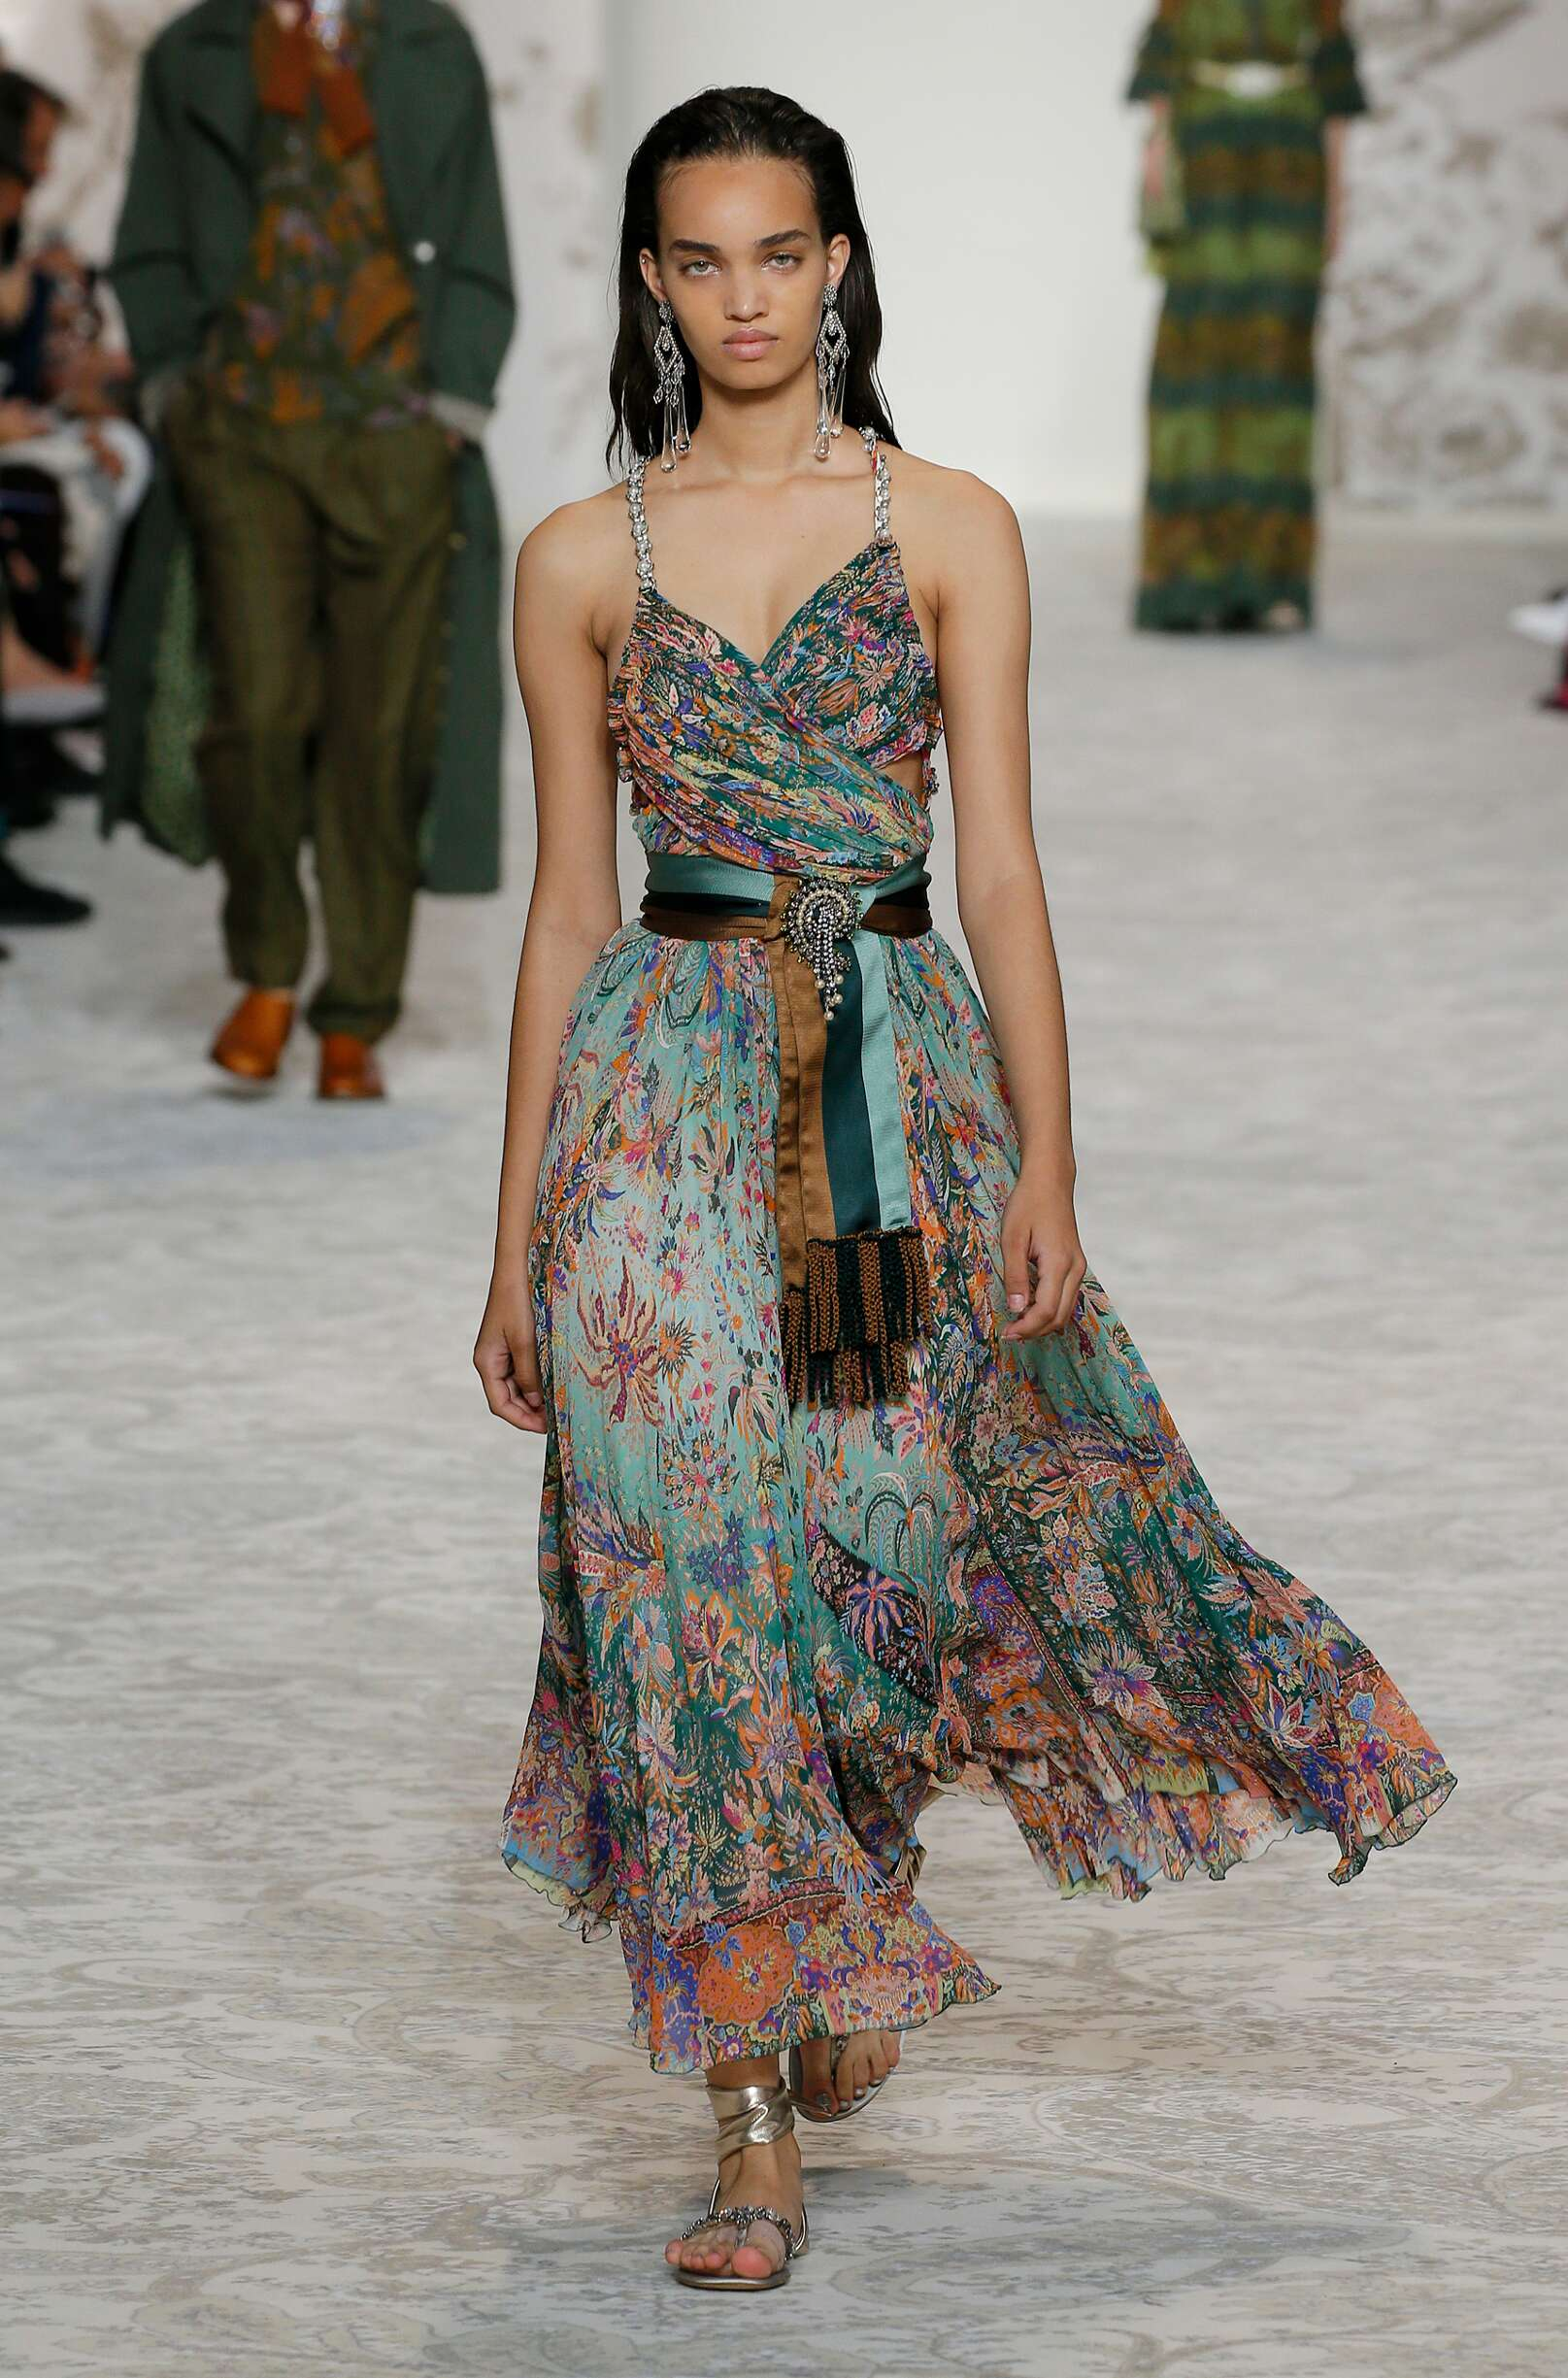 Etro Womenswear Collection Trends